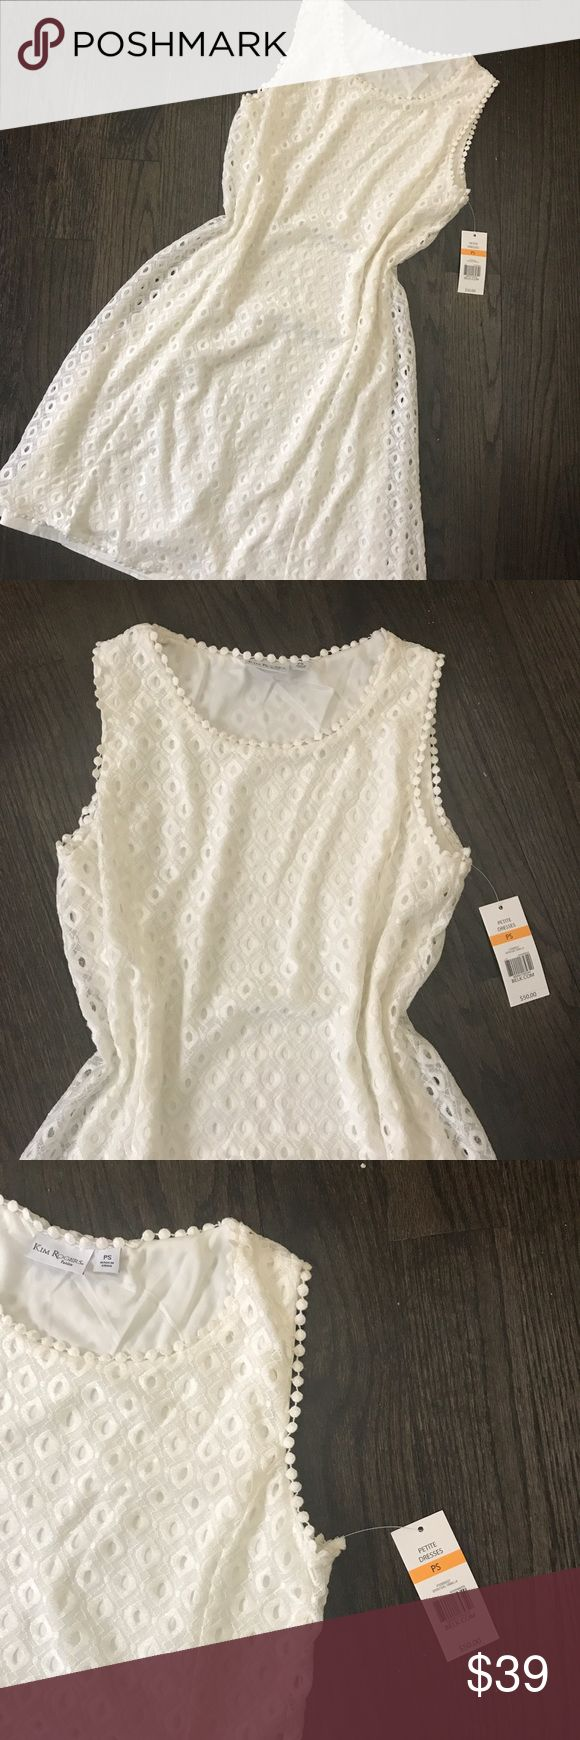 NWT Kim Rogers Sleeveless Ivory Lace Shift Dress Kim Rogers sleeveless ivory lace shift dress. Fully lined. Size PS. 34 inches long. Relaxed fit. Kim Rogers Dresses Mini